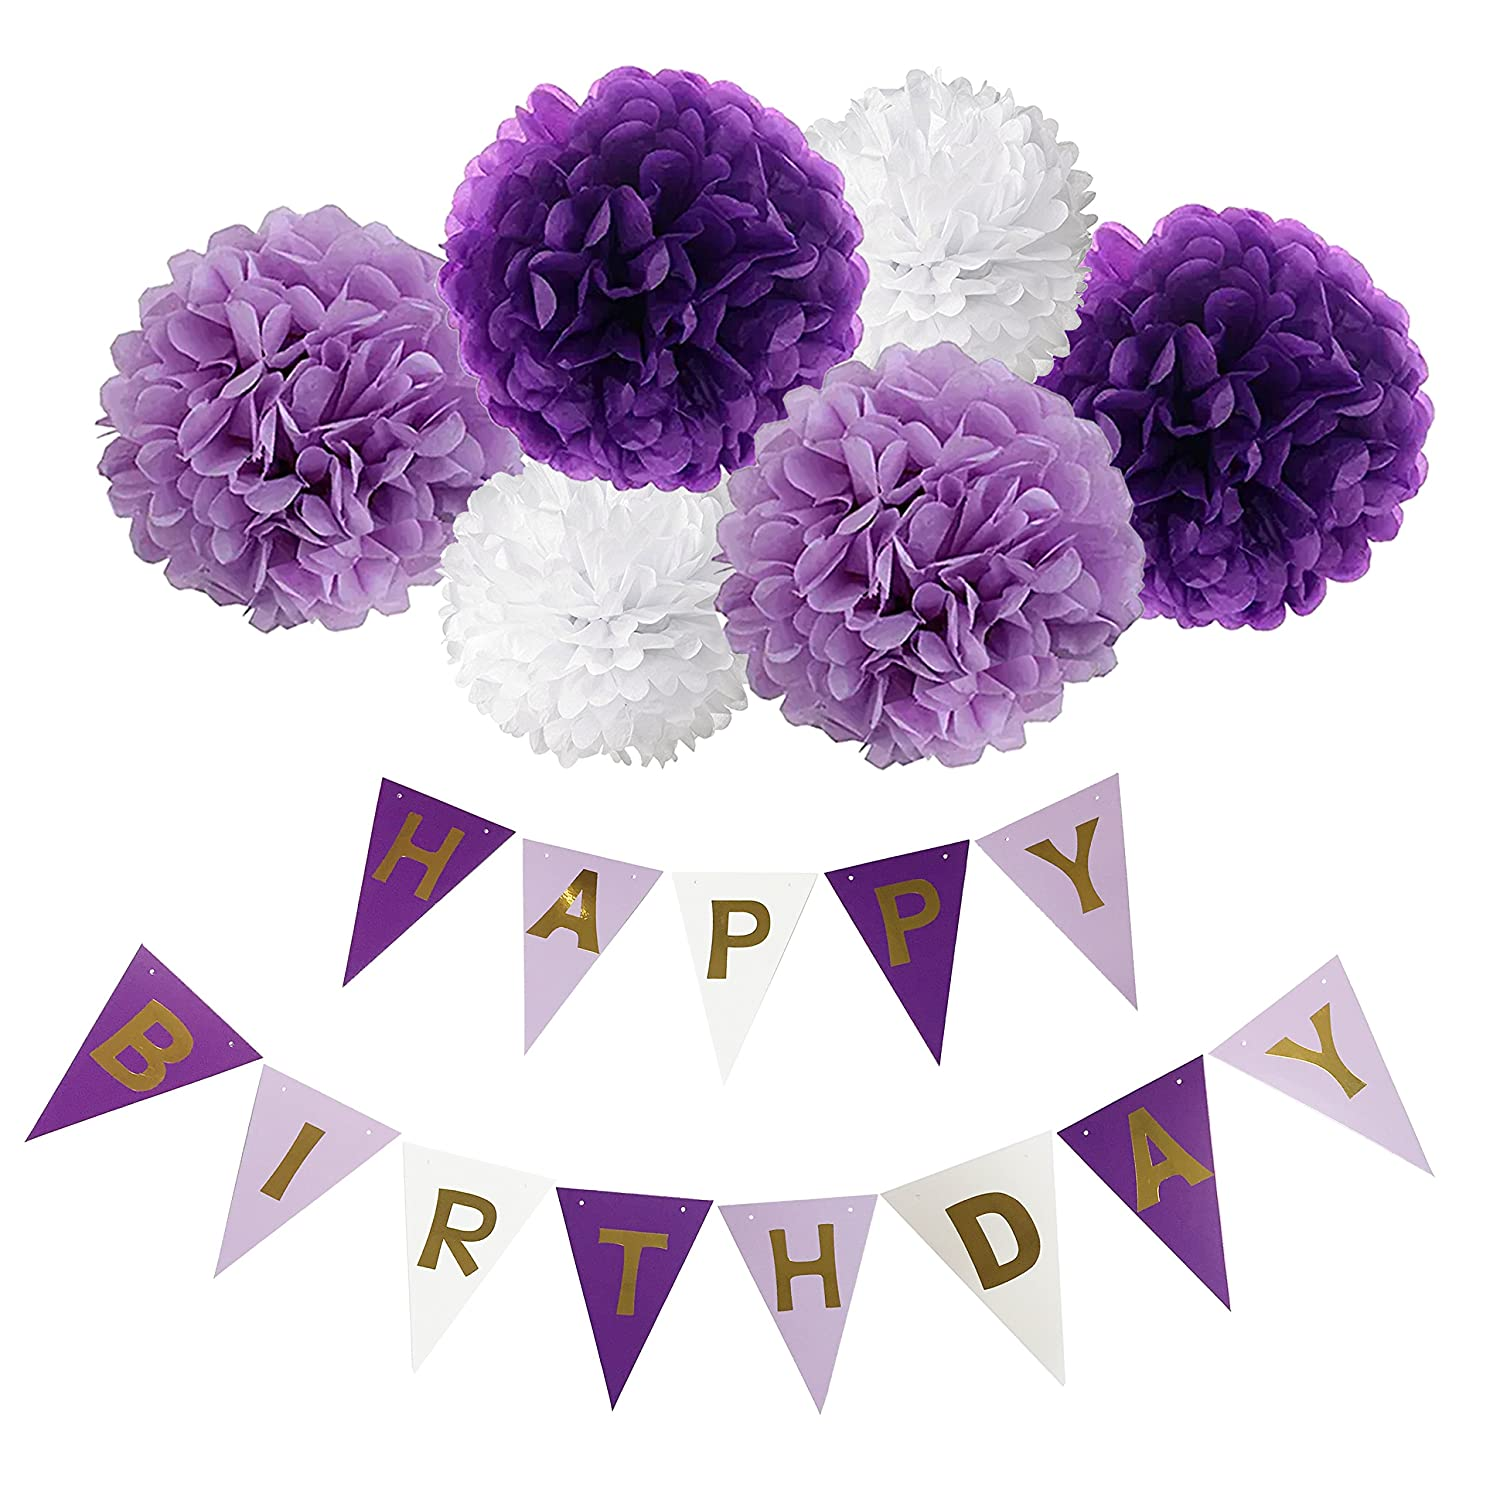 Amazon purple happy birthday bunting banner10 tissue paper happy birthday banner bunting kit wartoon paper pom poms flowers ball with hanging party decorations izmirmasajfo